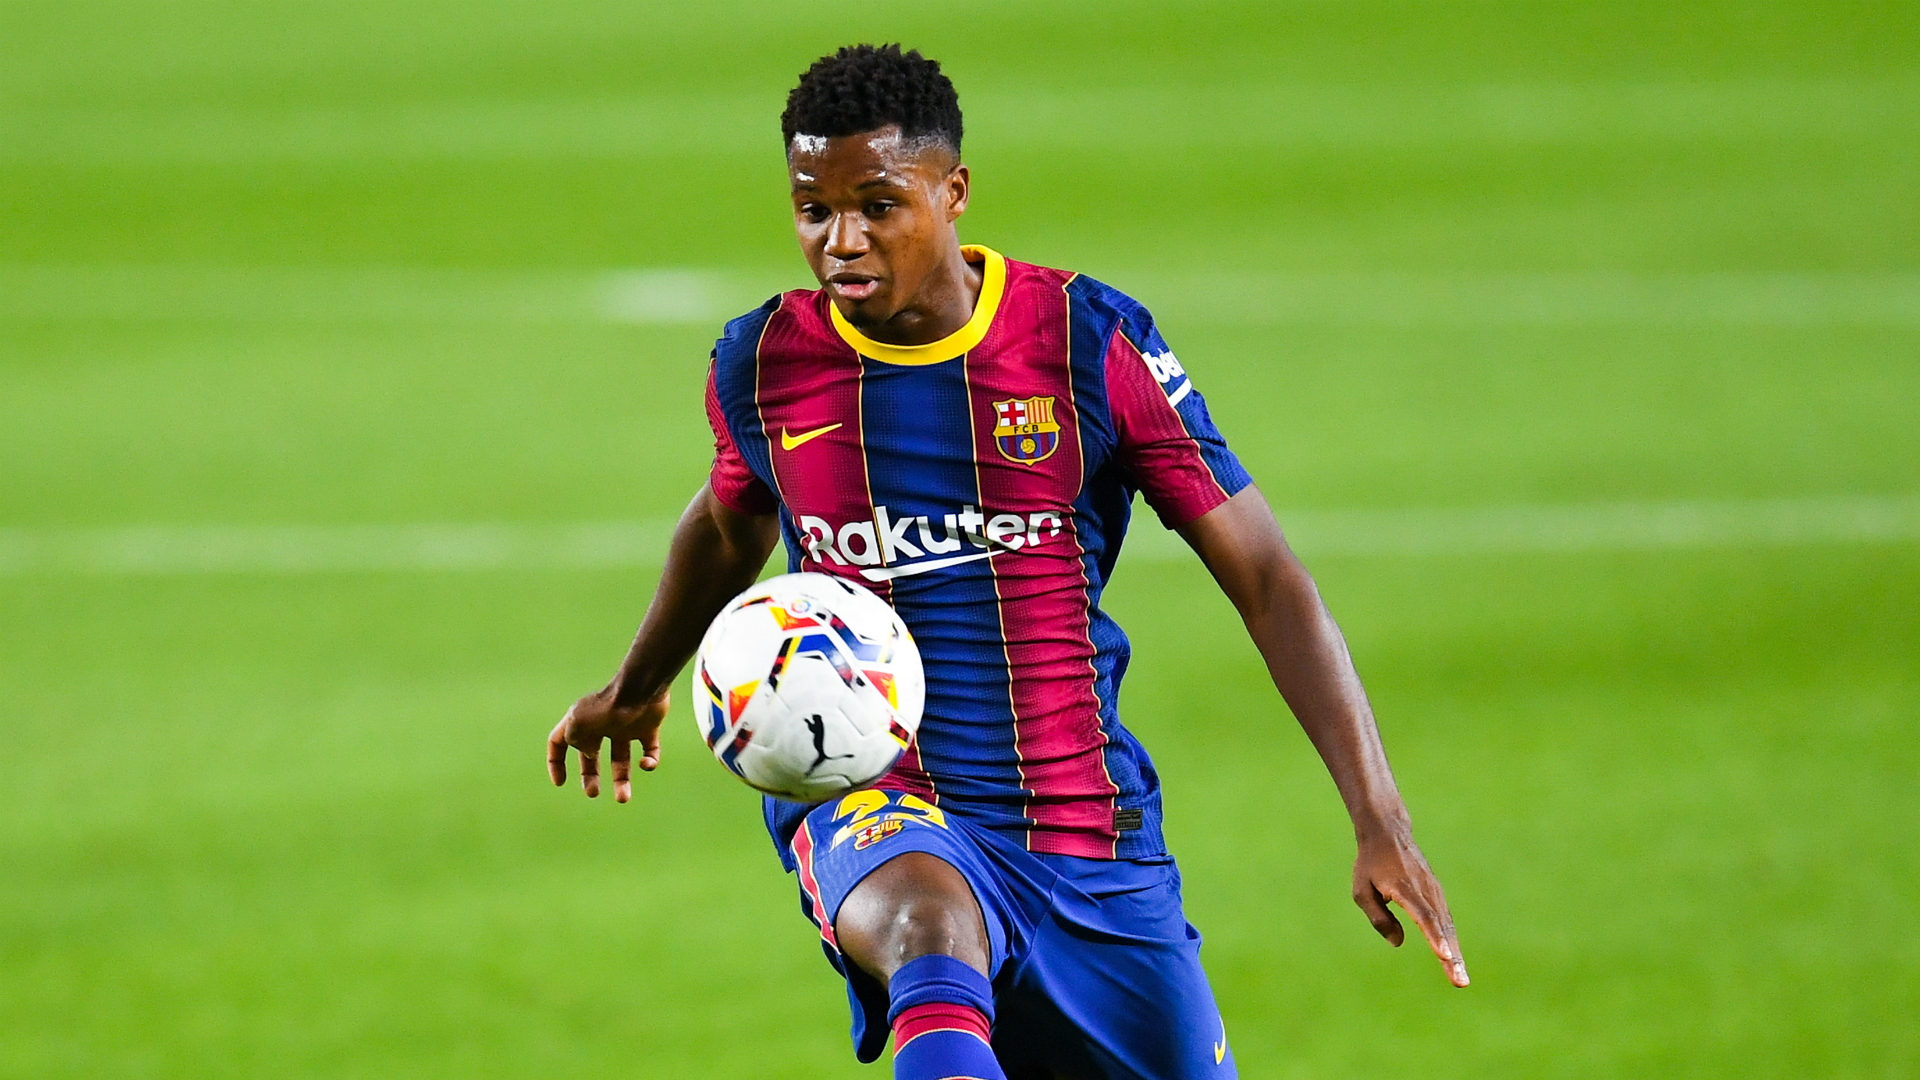 Ansu Fati turns 18: Barca star savours 'just the beginning' as Koeman says best is still to come